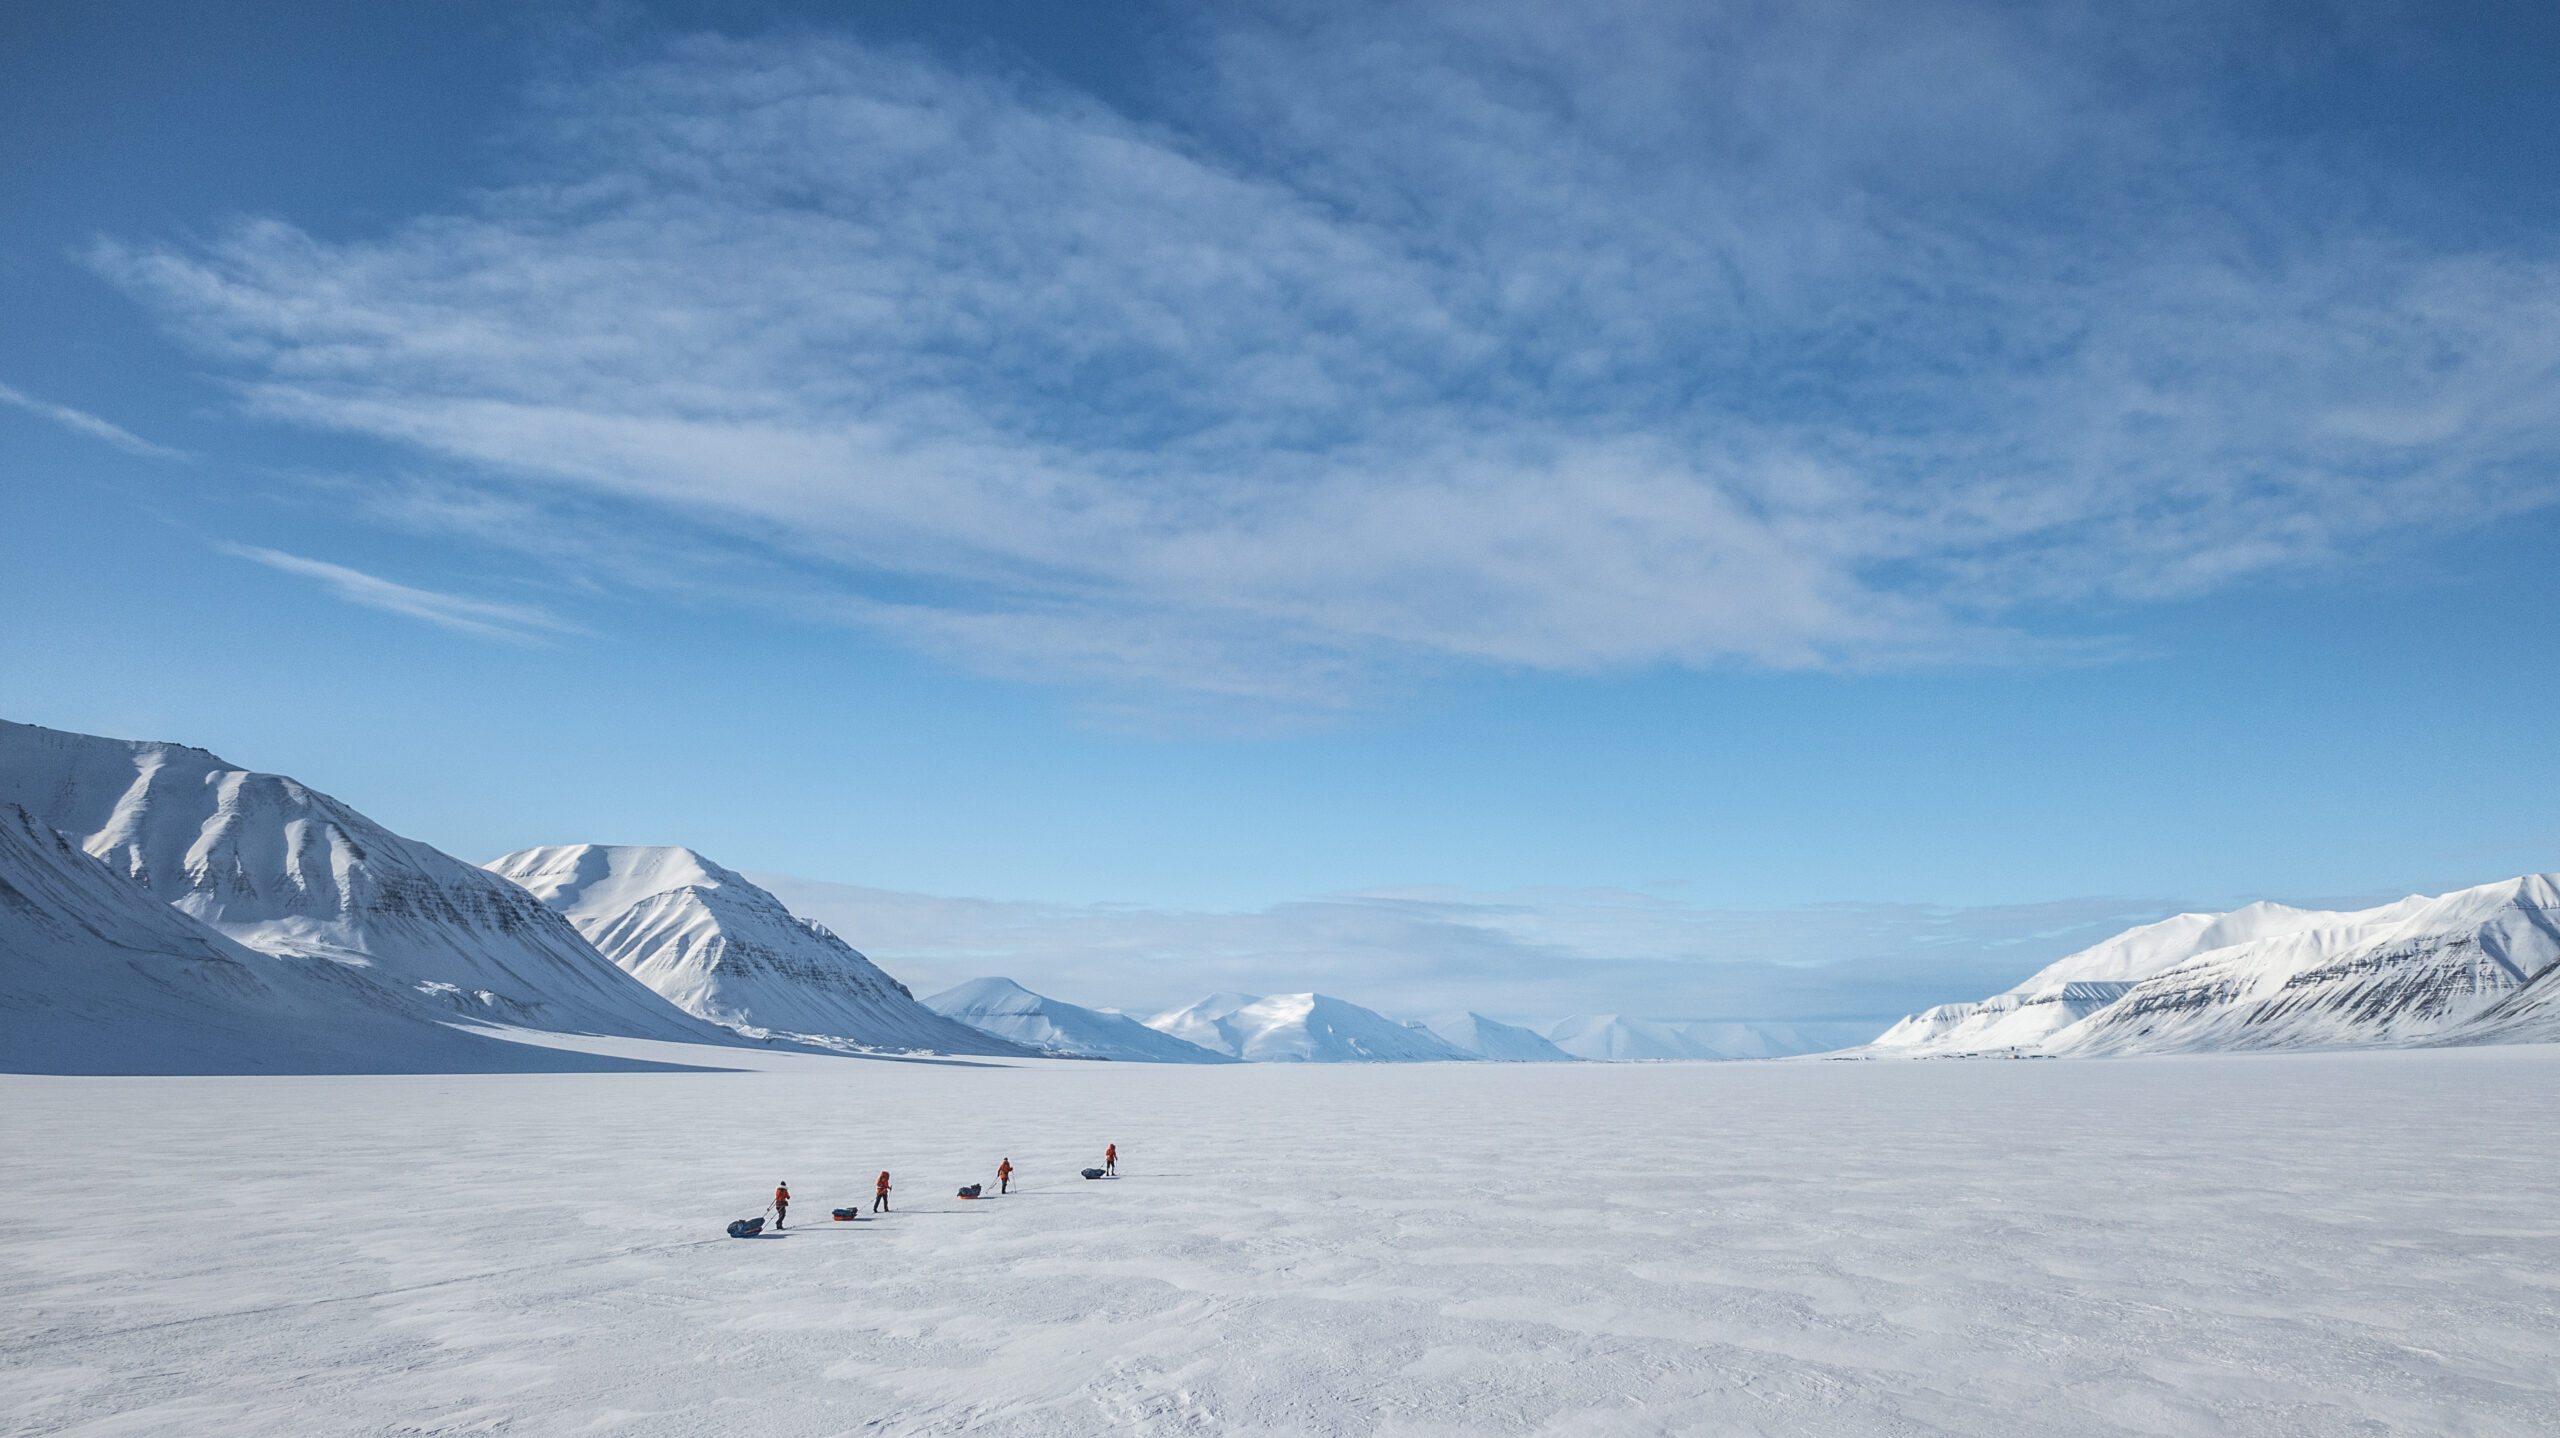 The Climate Sentinels team of female scientists ski Kfjellströmdalen, a 25-kilometer-long valley in Nordenskiöldland, Svalbard. The team traversed Svalbard's Spitsbergen Island to sample the snow and study the effects of black carbon on the Arctic island. Credit: Heïdi Sevestre